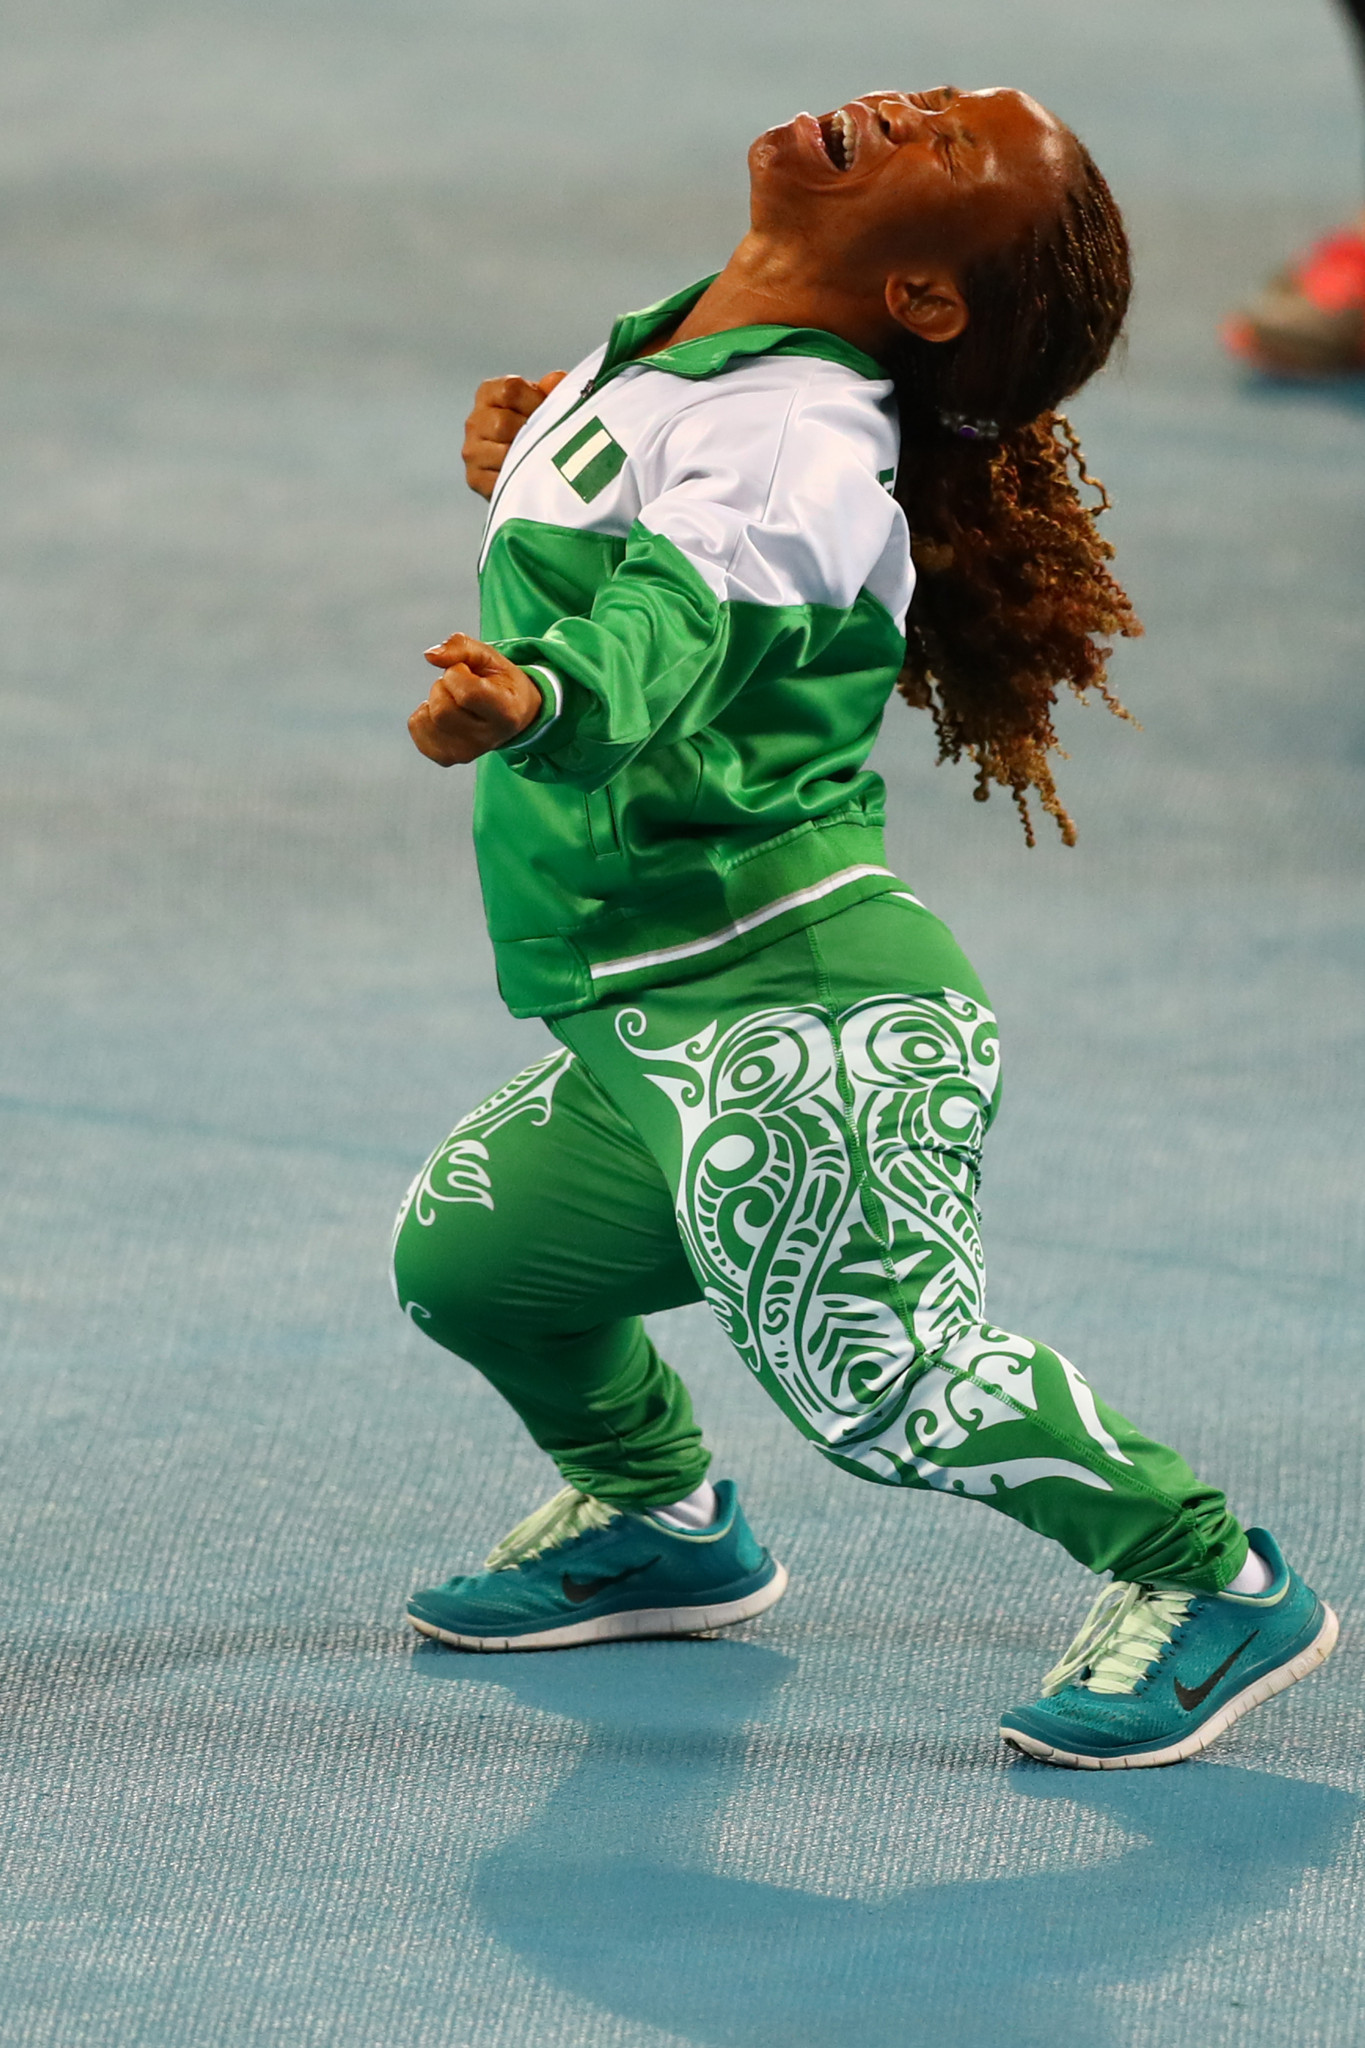 Lauritta Onye of Nigeria celebrates after breaking the world record in the women's shot put at the Rio 2016 Paralympic Games, an event plagued with problems  ©Getty Images